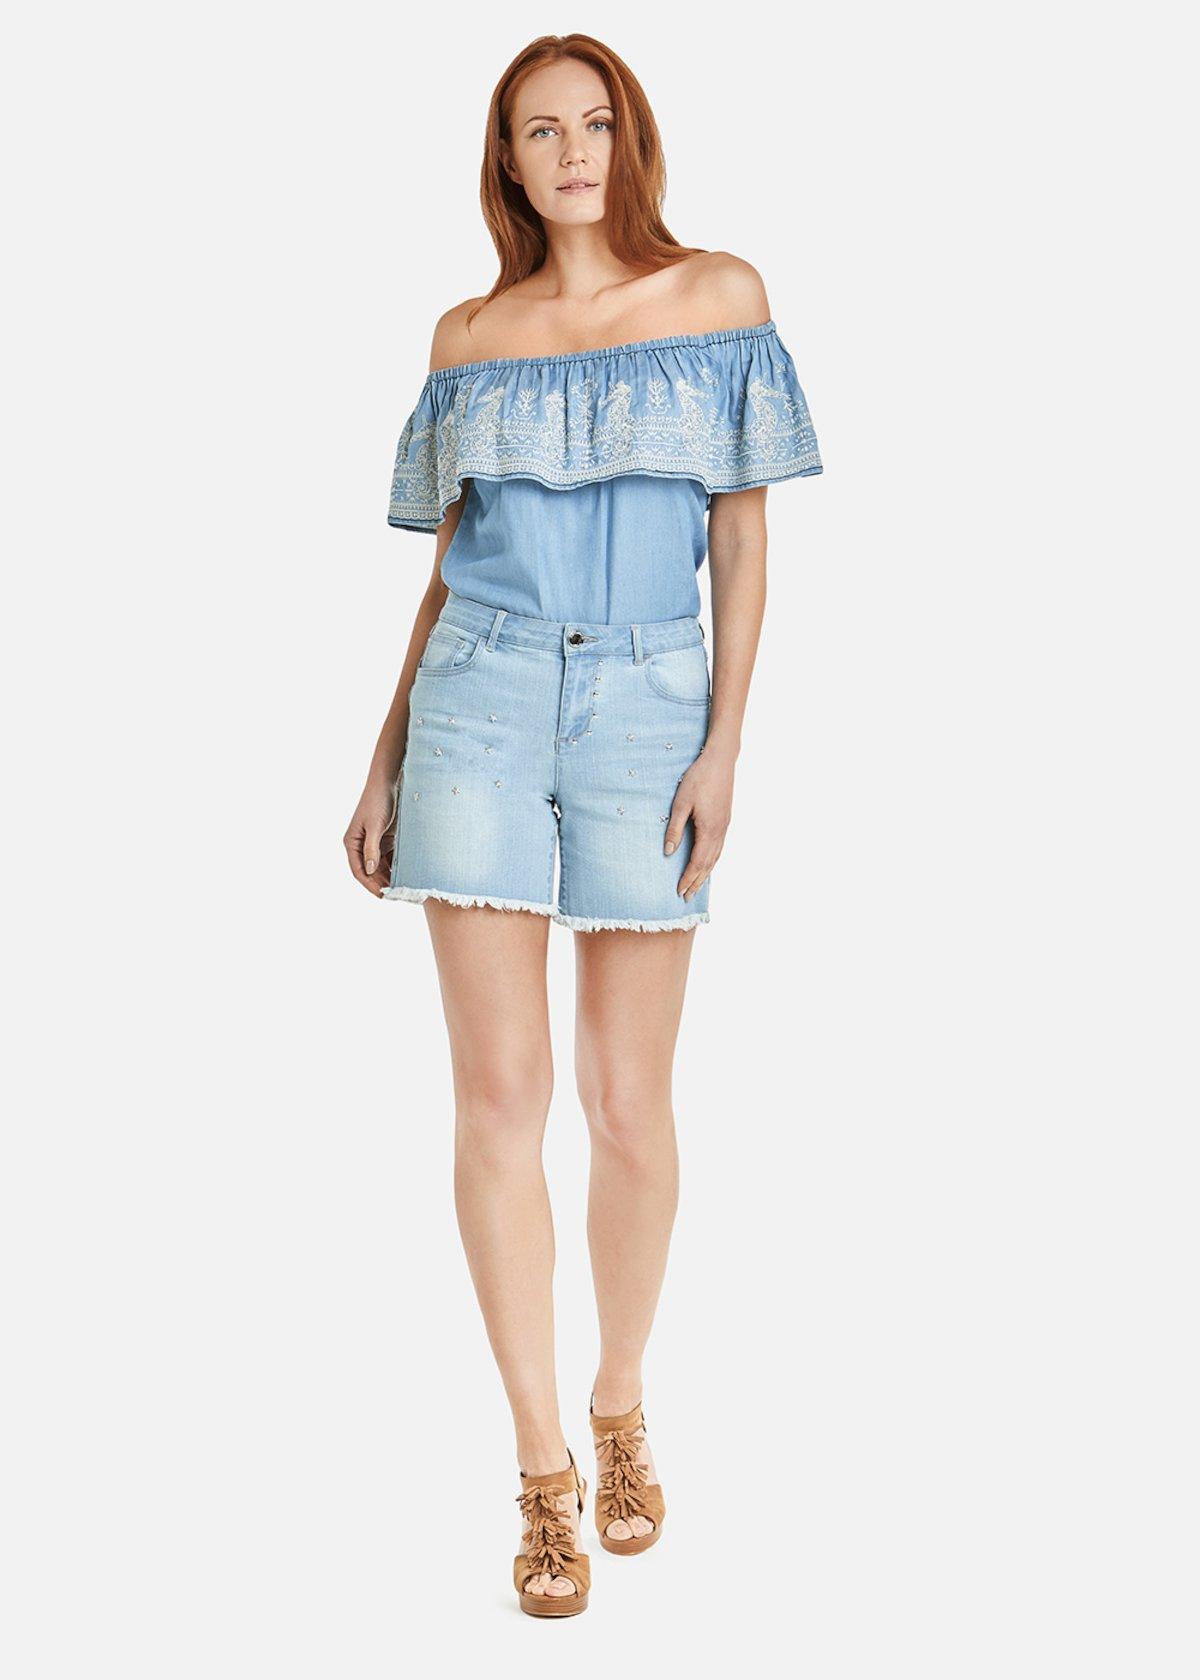 Brian light denim shorts